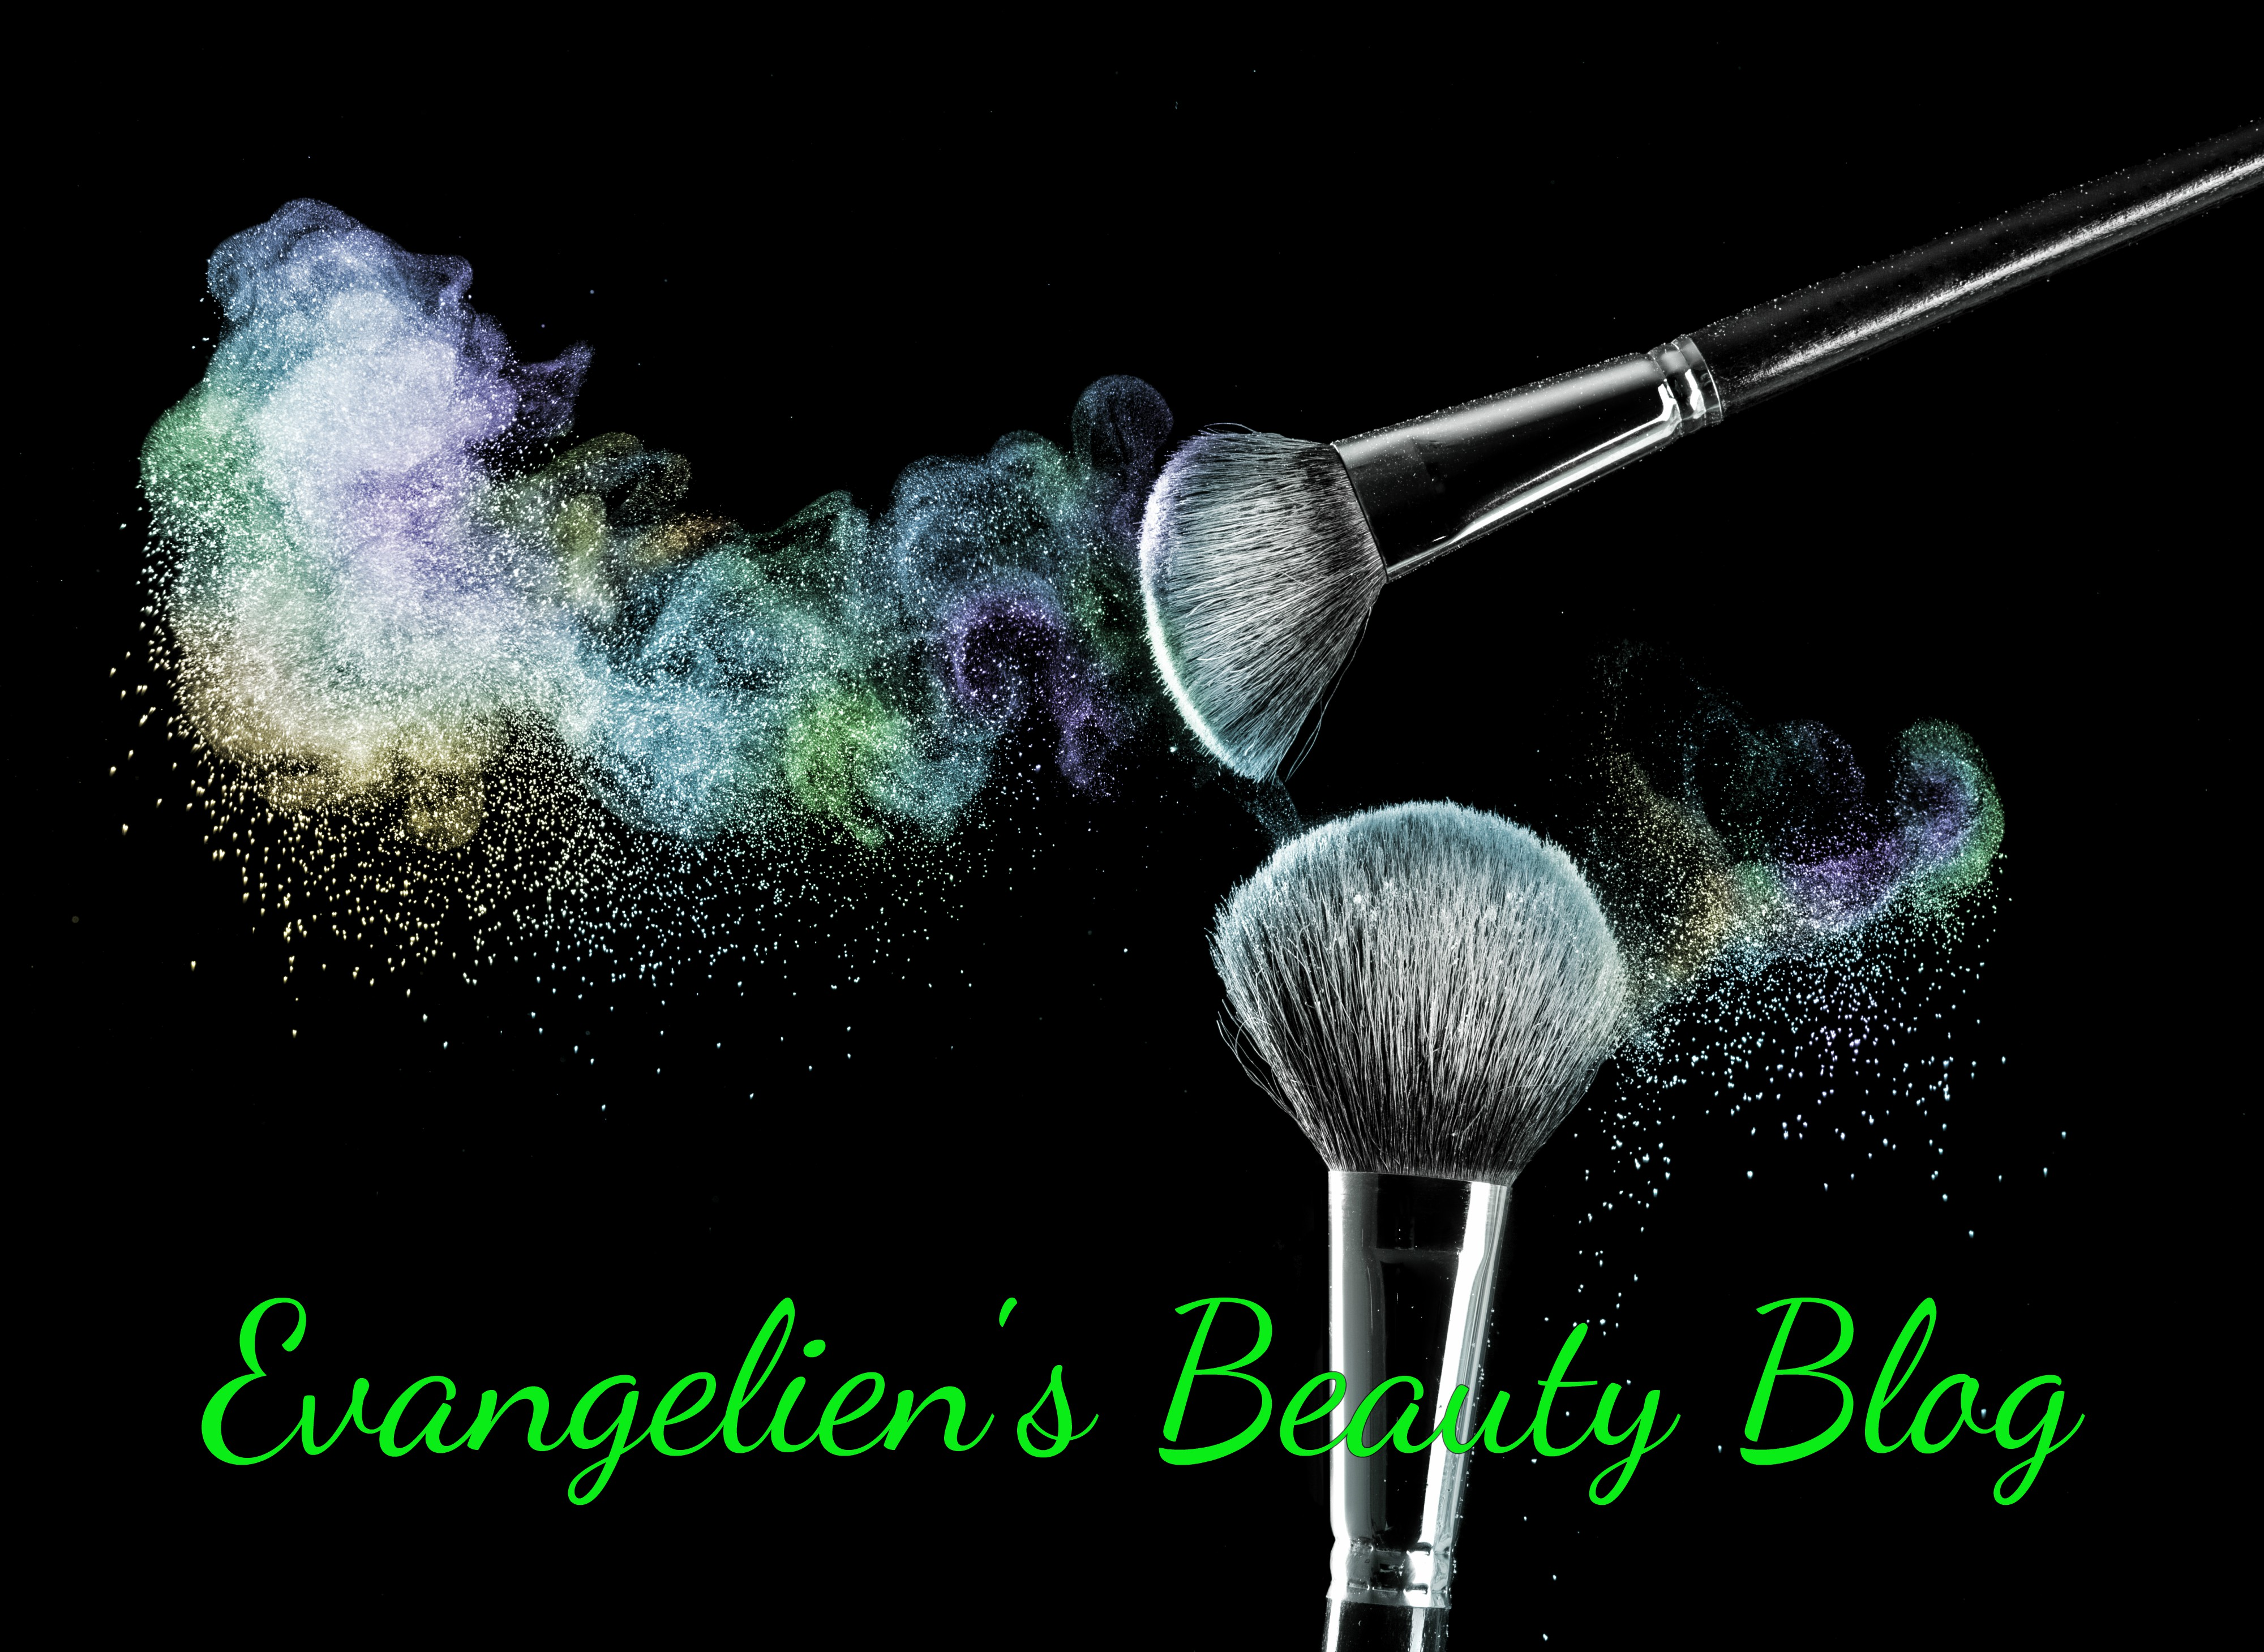 Evangelien's Beauty Blog